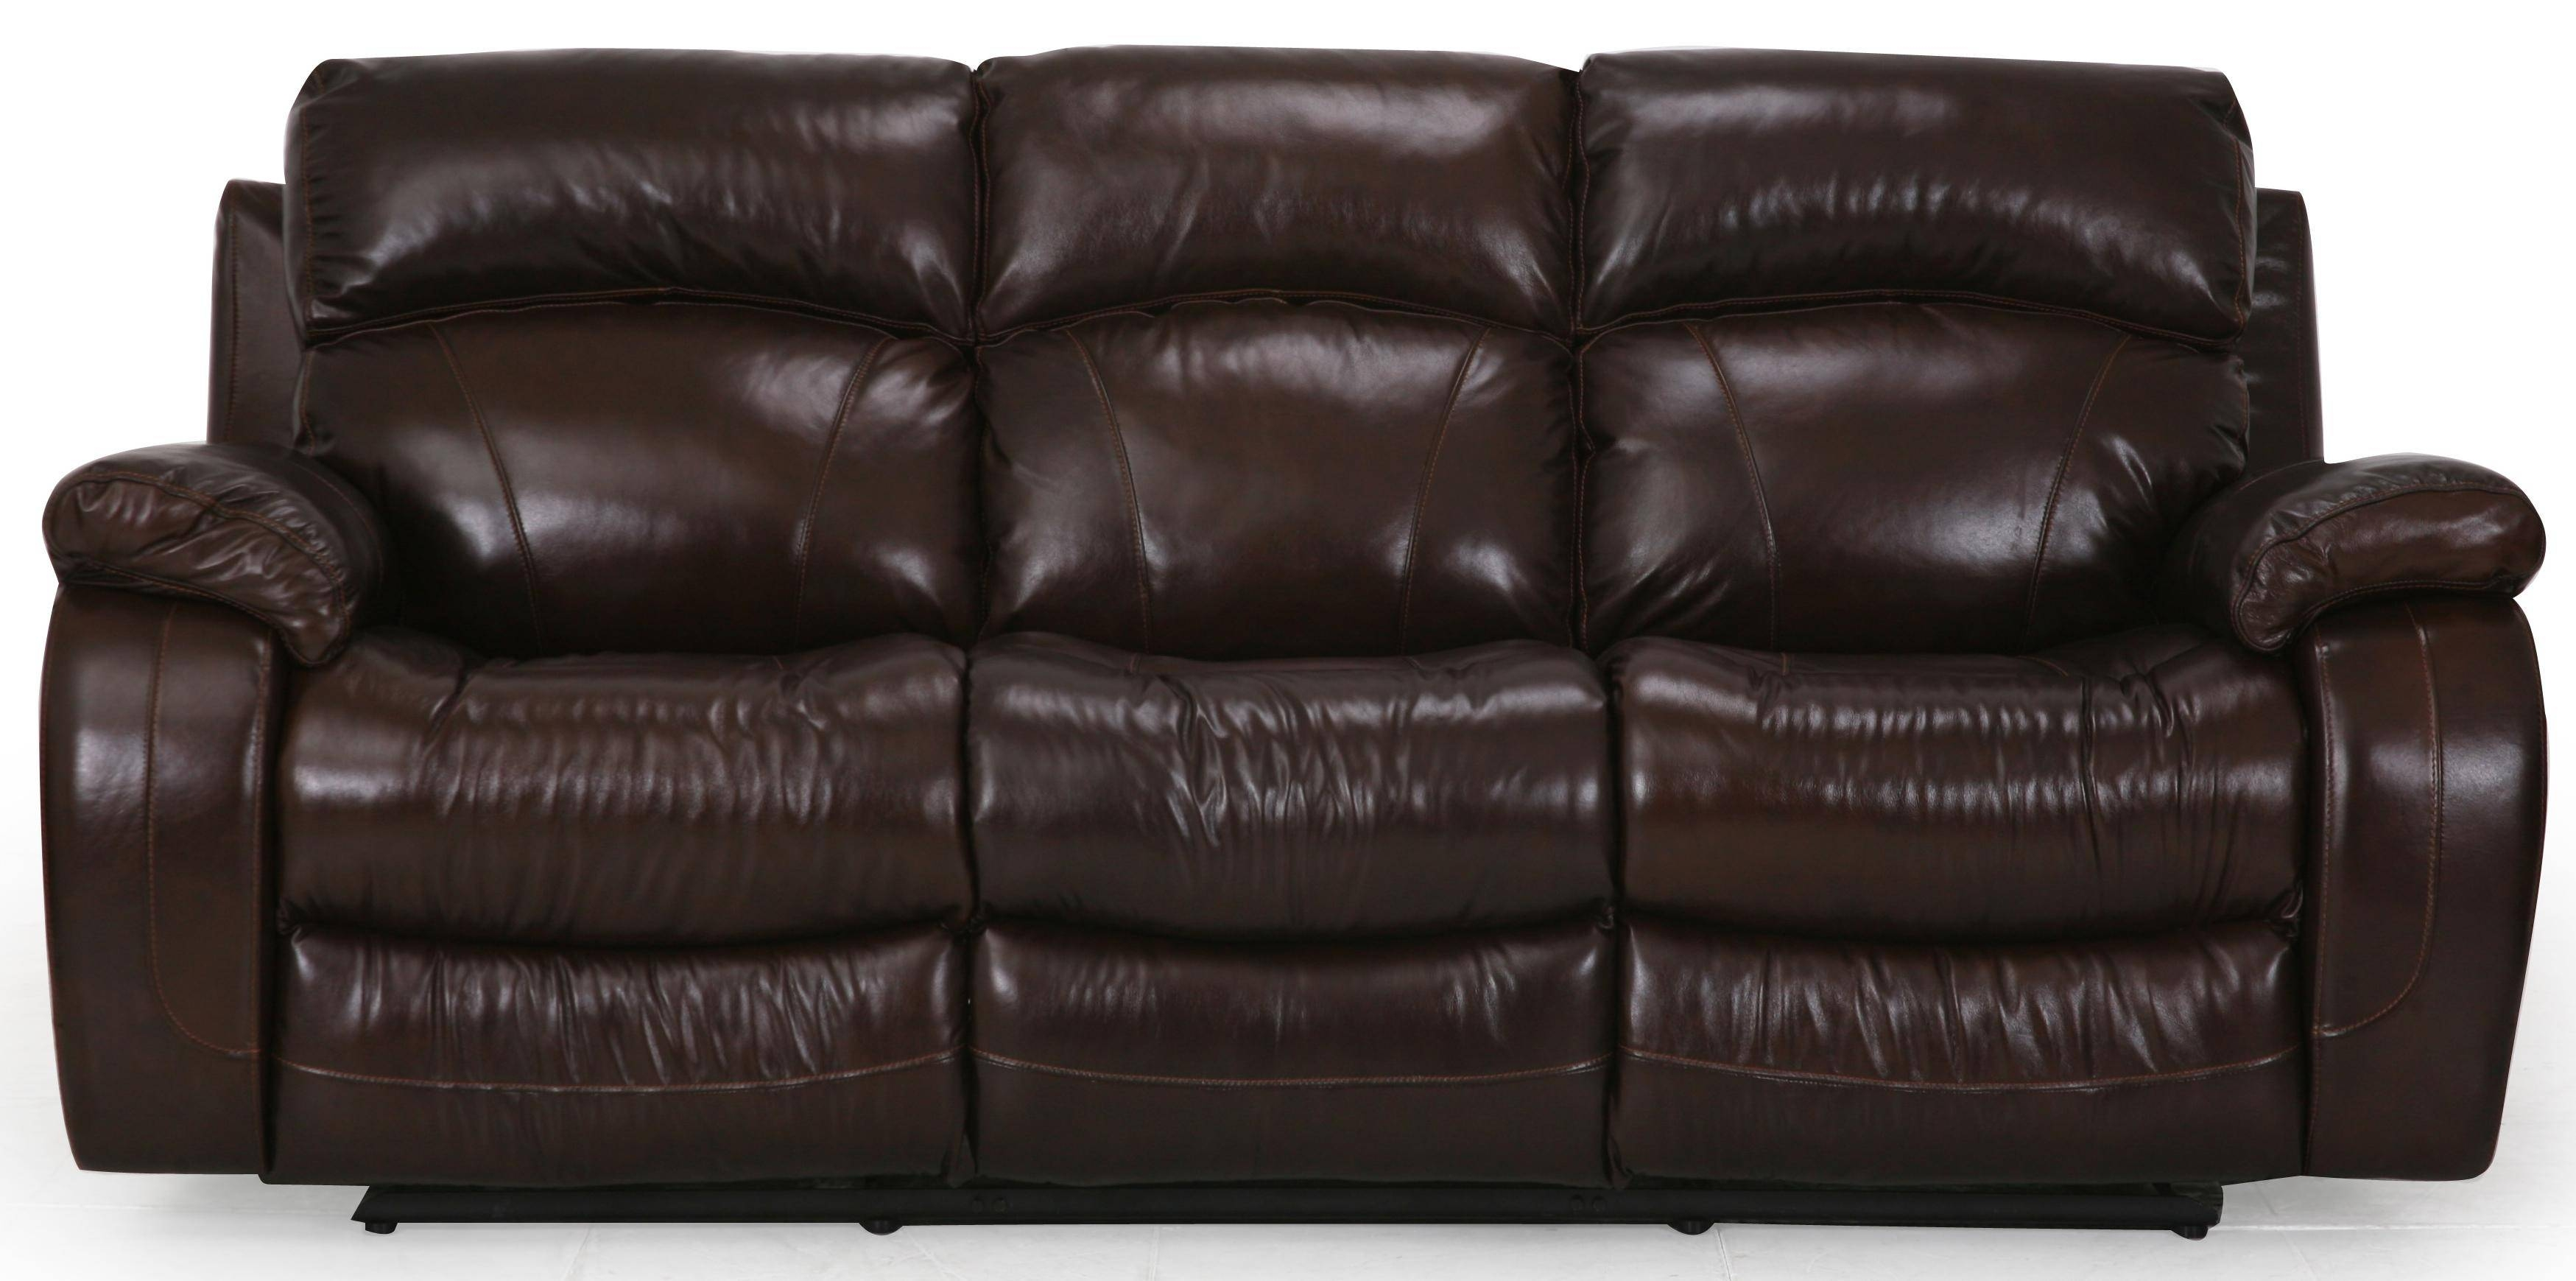 Cheers Sofa Luke Leather Reclining Sofa - Great American Home regarding Cheers Leather Sofas (Image 7 of 15)